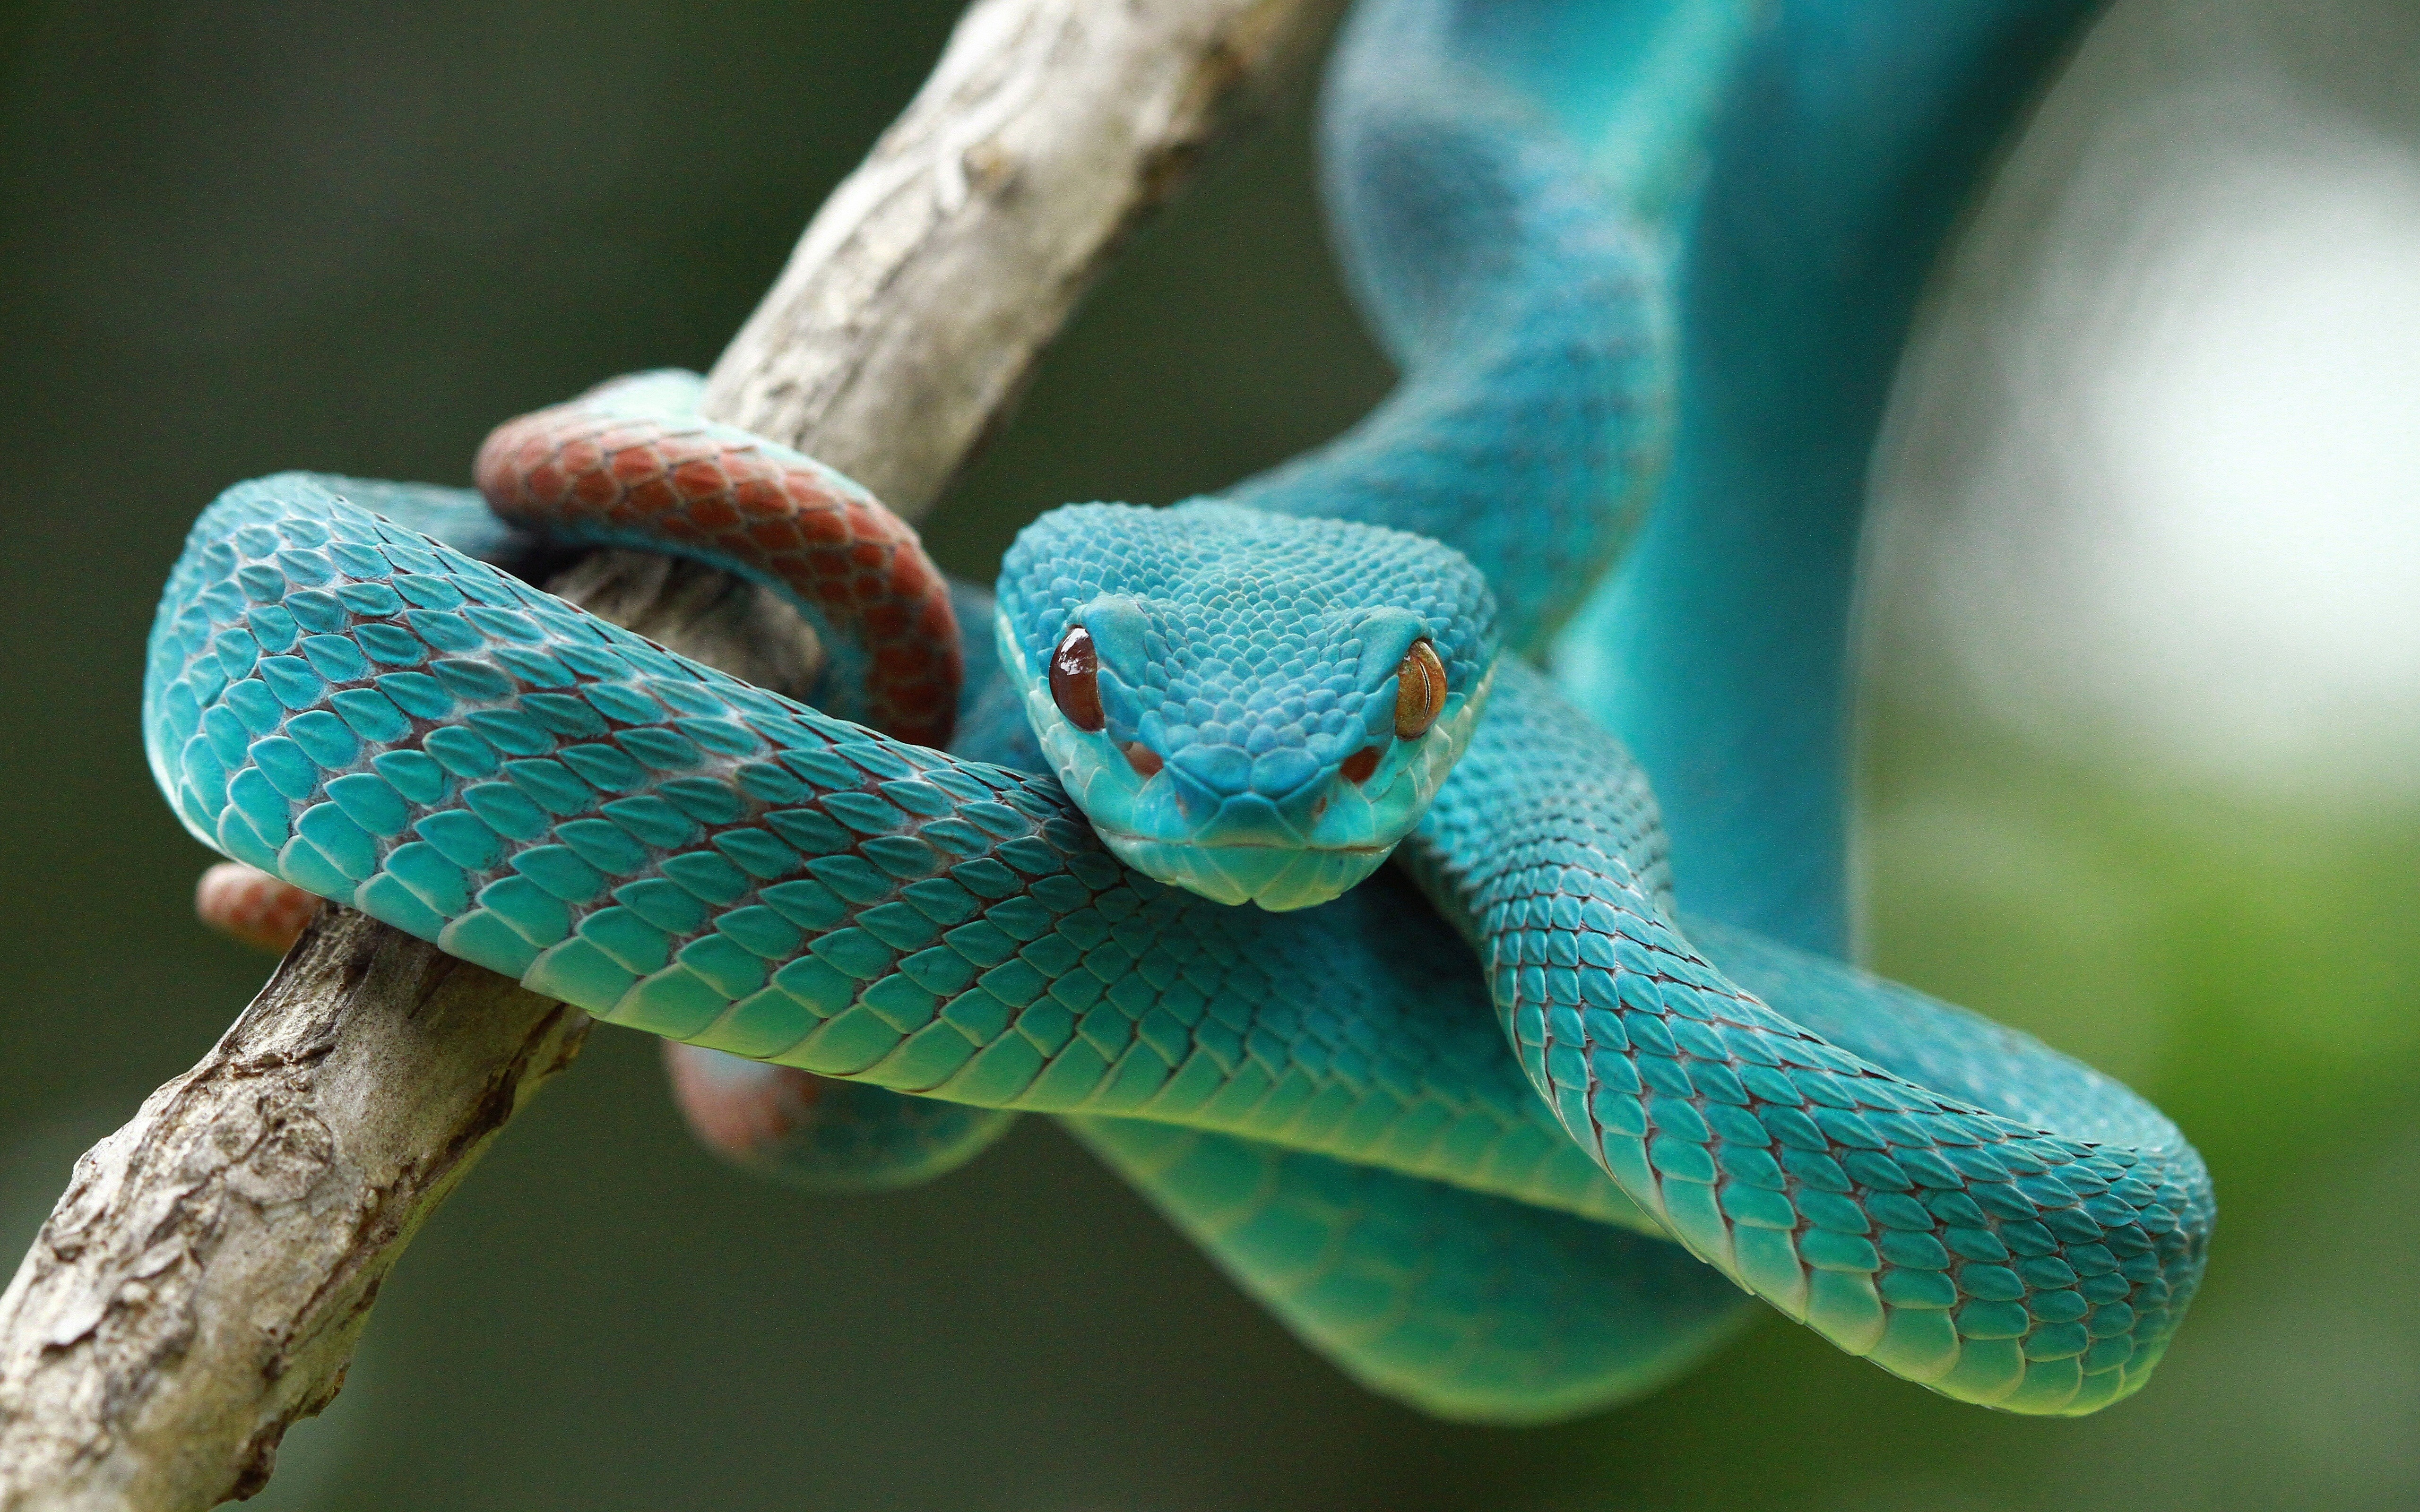 blue vipers snake 5k wallpaper hd wallpapers